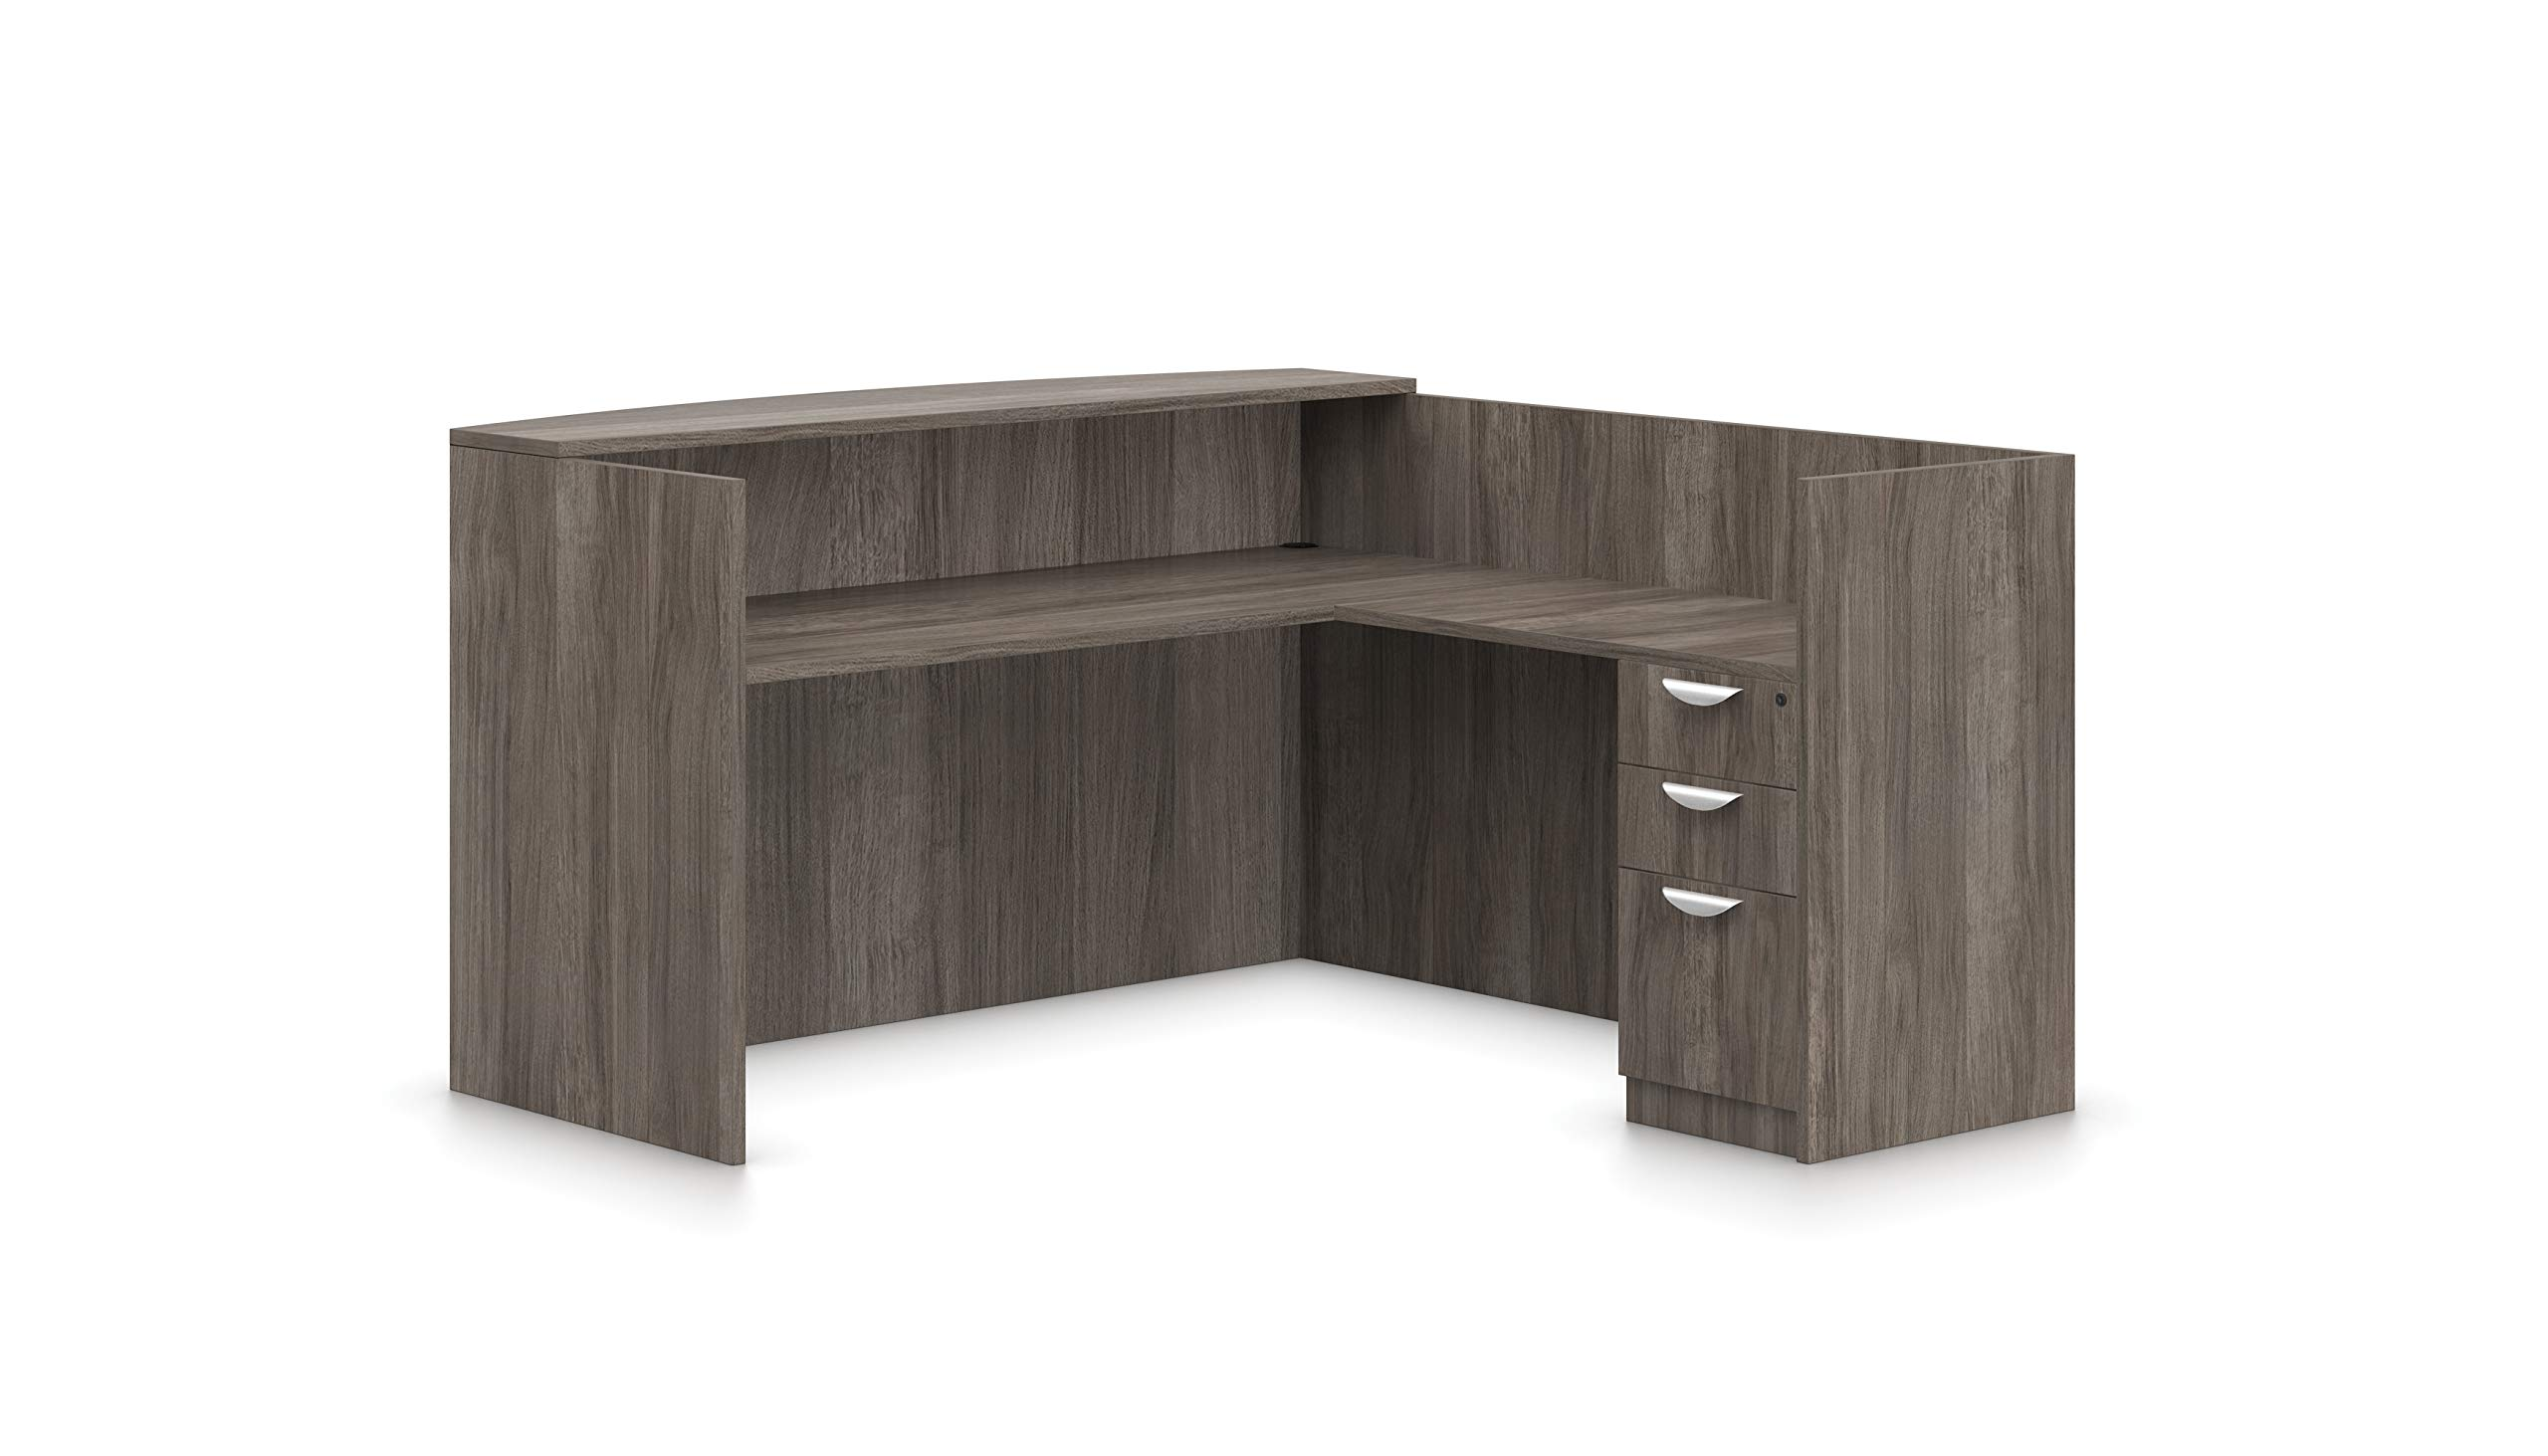 Offices To Go L Shaped Reception Desk W/Drawers W/Transaction Top 71'' W X 30'' D X 42'' H Reception Return 42'' W X 24'' D X 42'' H - Artisan Grey AGL by Offices To Go